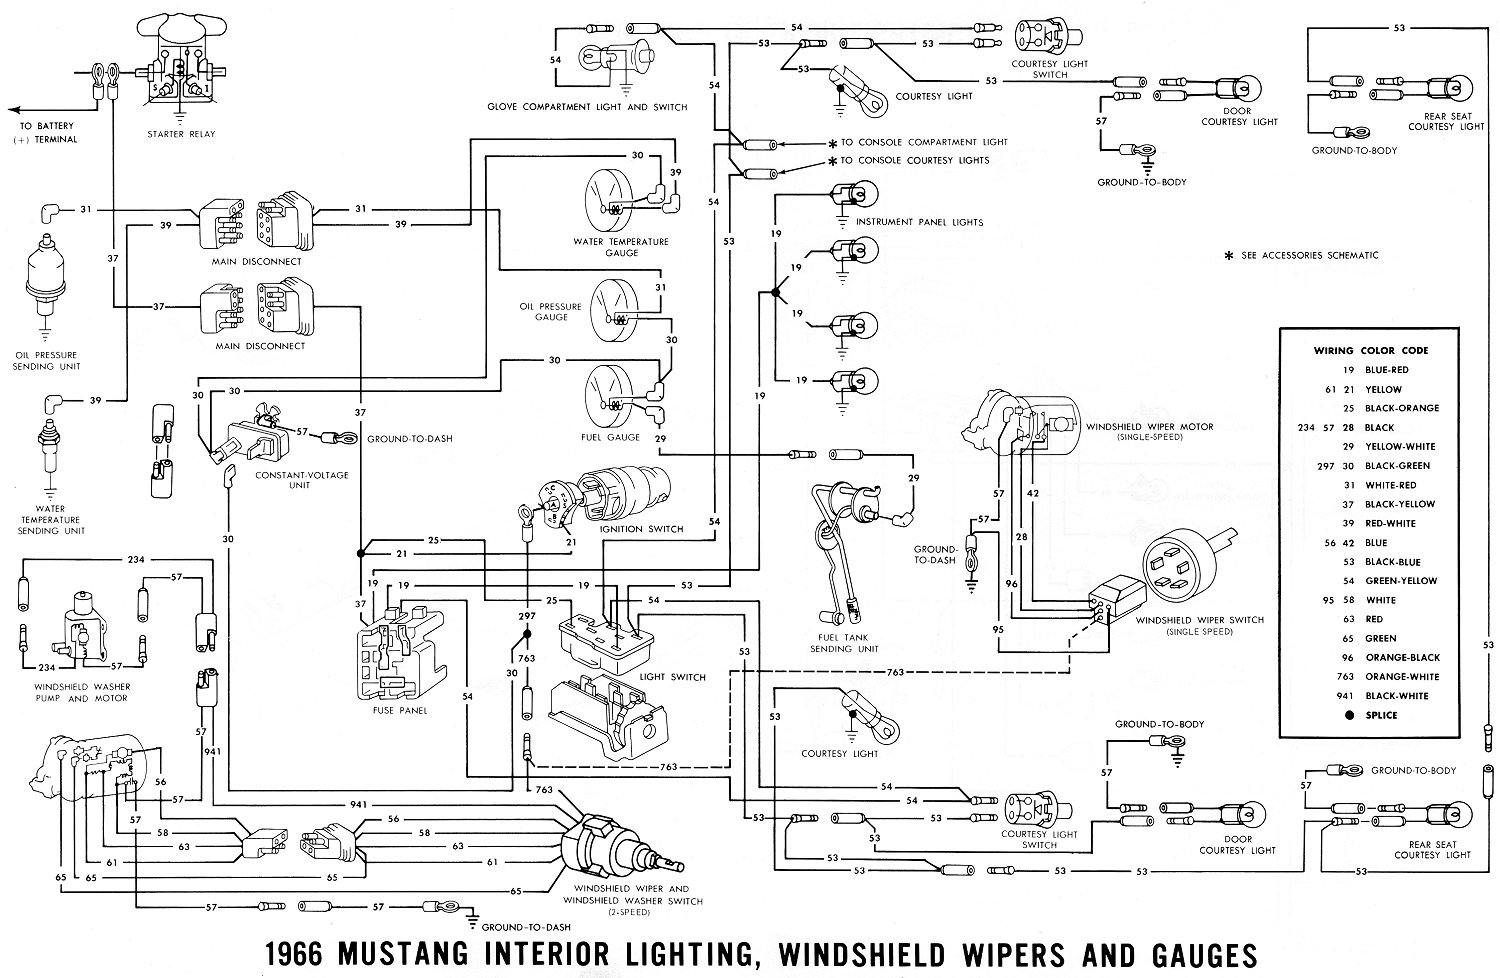 66inter1 1966 mustang wiring diagrams average joe restoration 1966 ford mustang wiring diagram at crackthecode.co